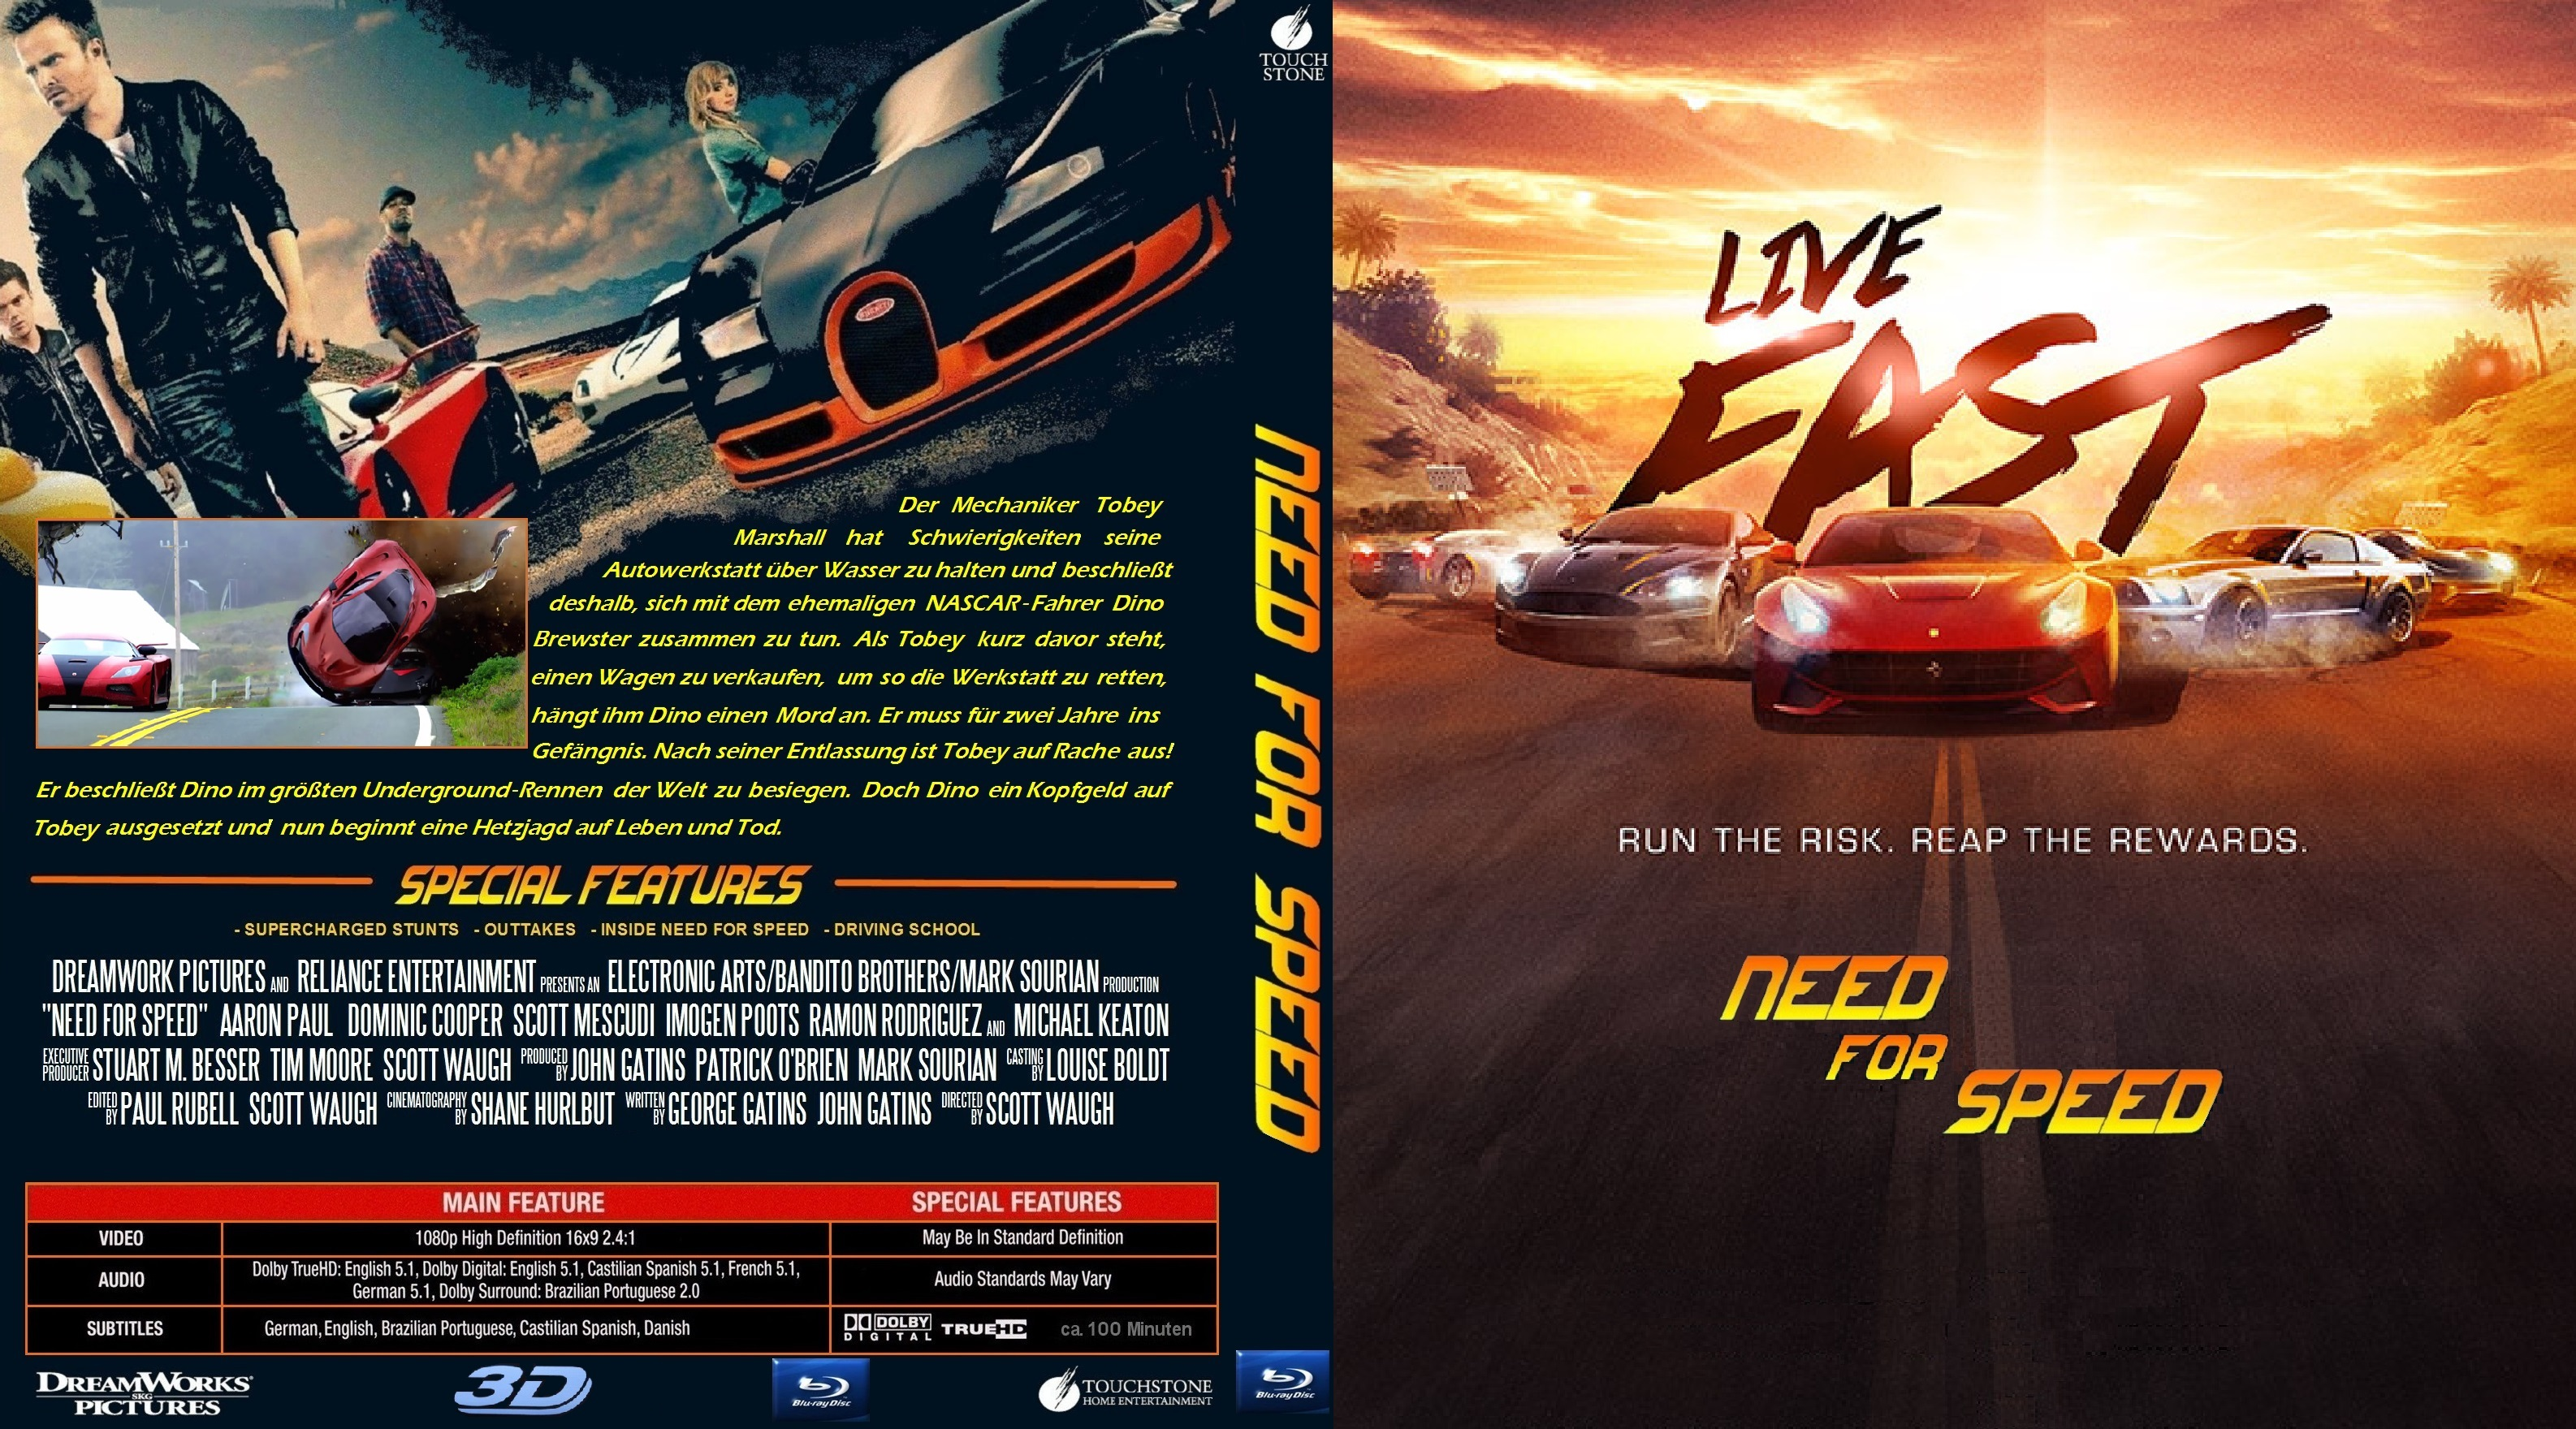 Need For Speed 2014 Movie Dvd Cover – images free download